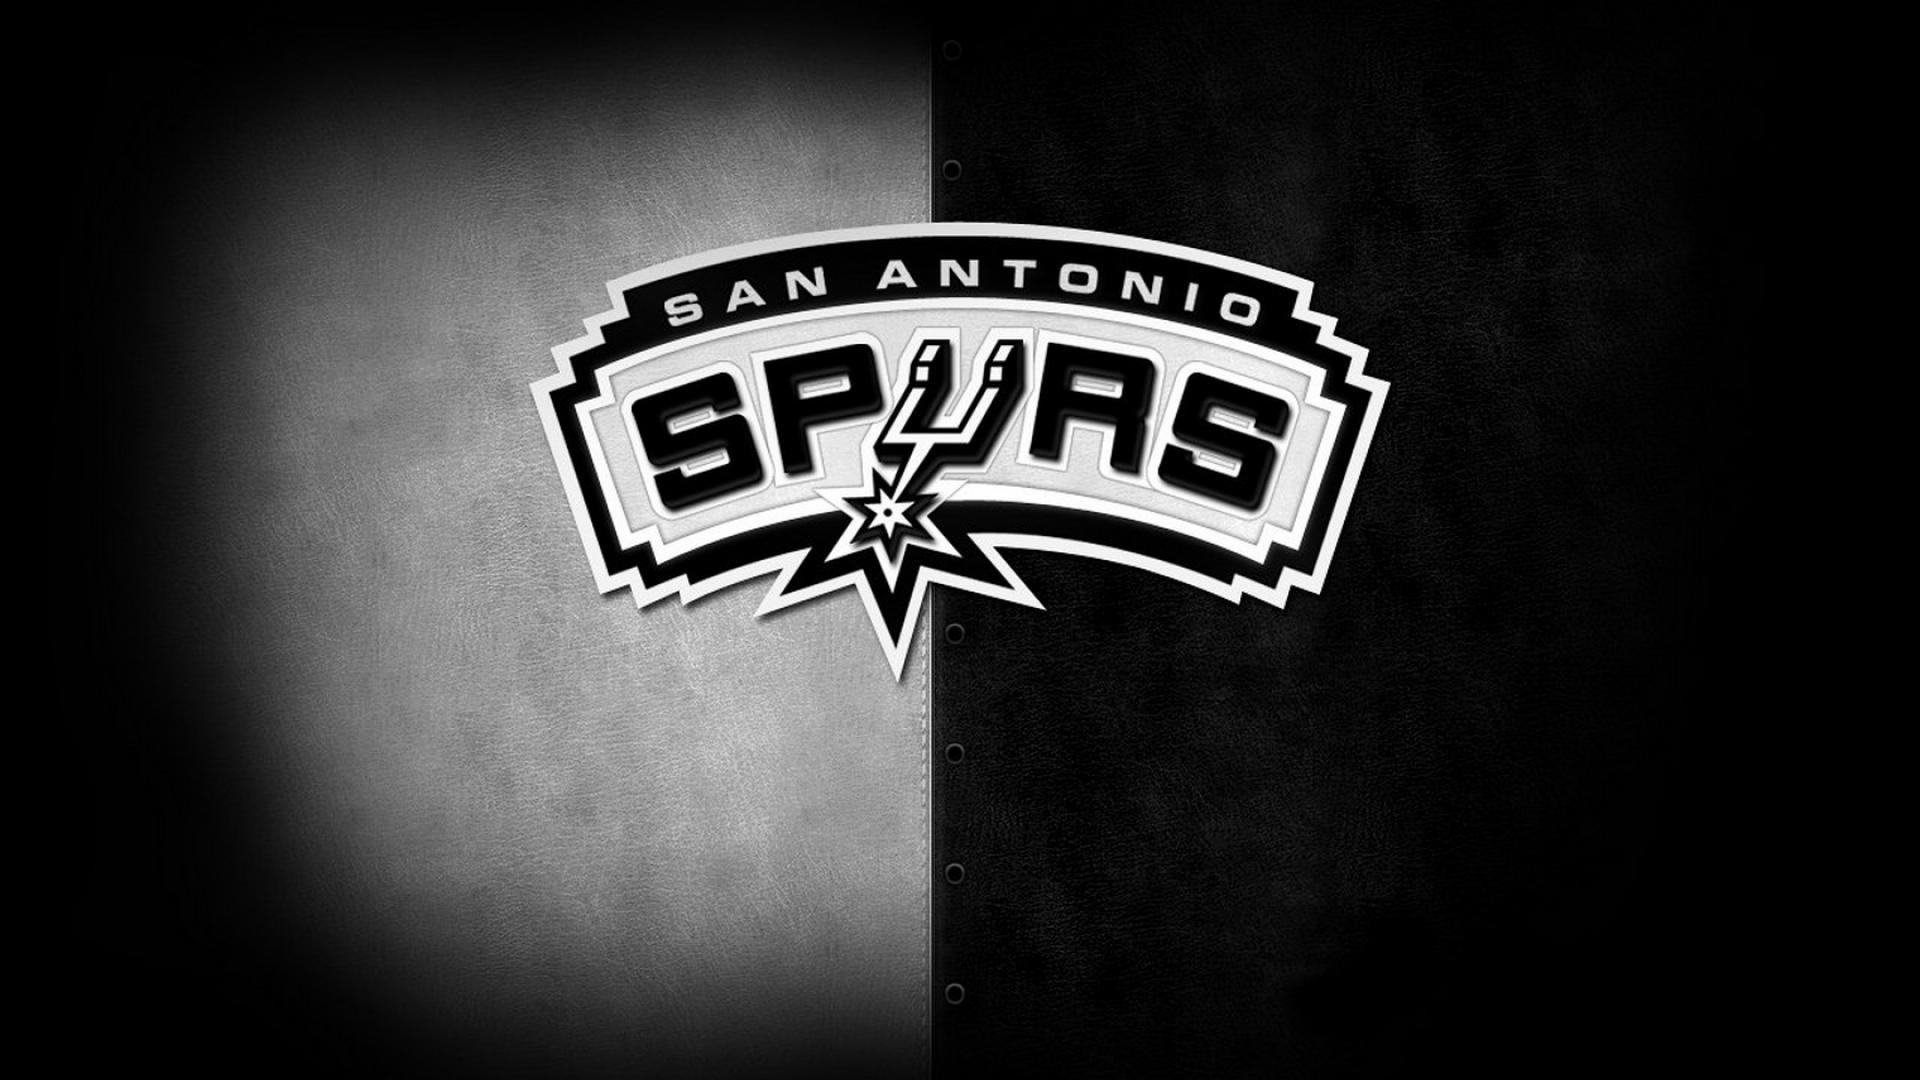 1920x1080 San antonio spurs chicago bulls HD wallpapers.